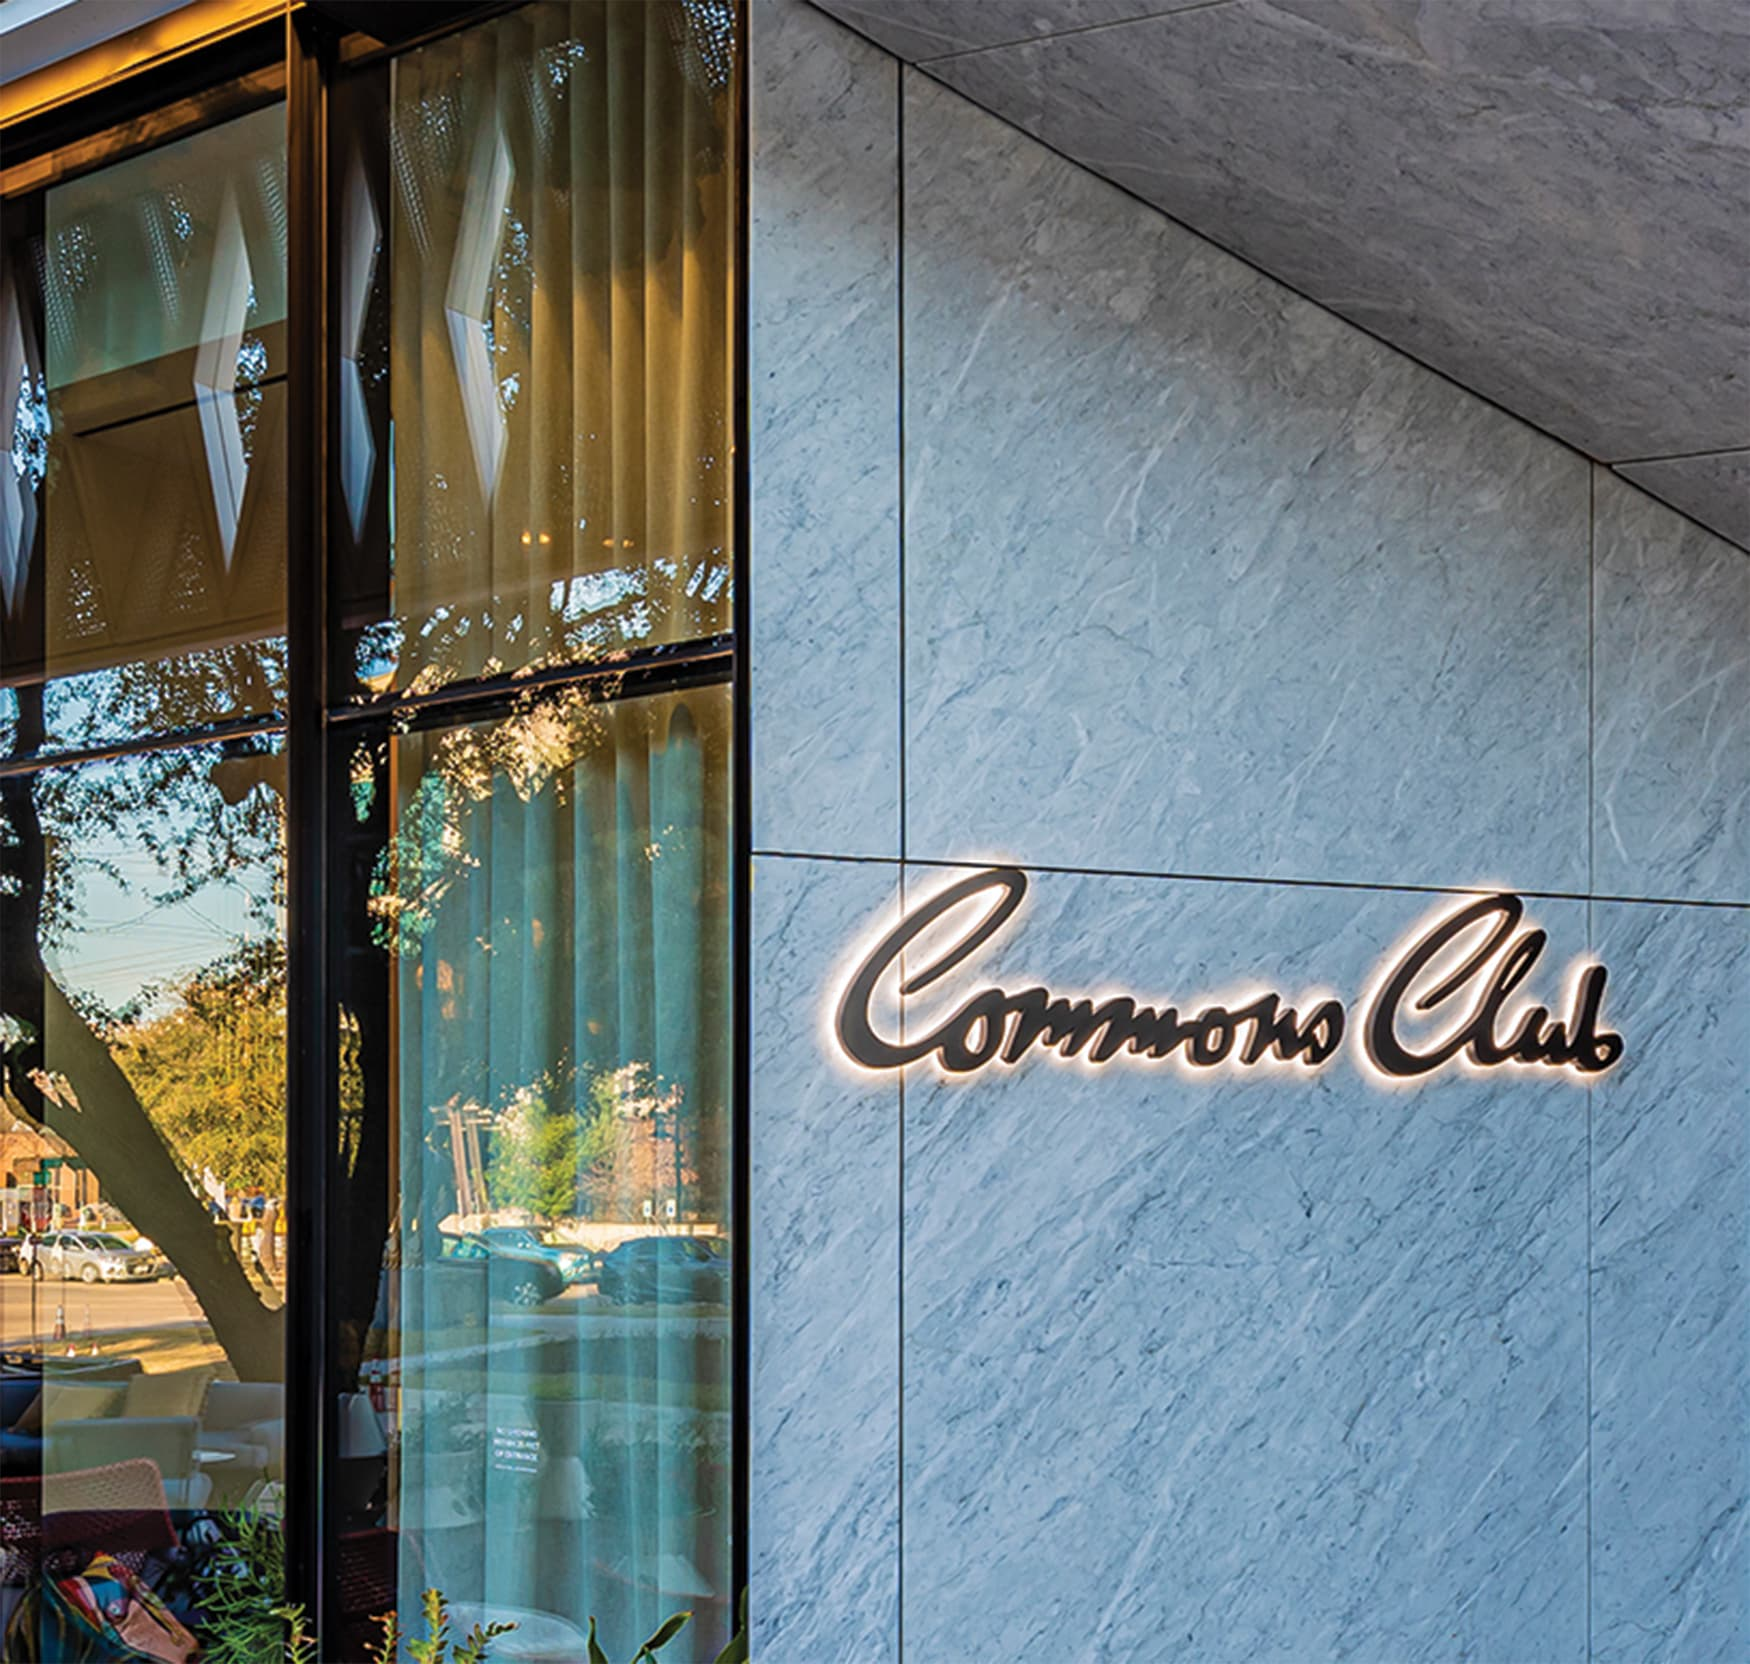 Commons Club at Virgin Hotel Dallas signage with halo illumination.